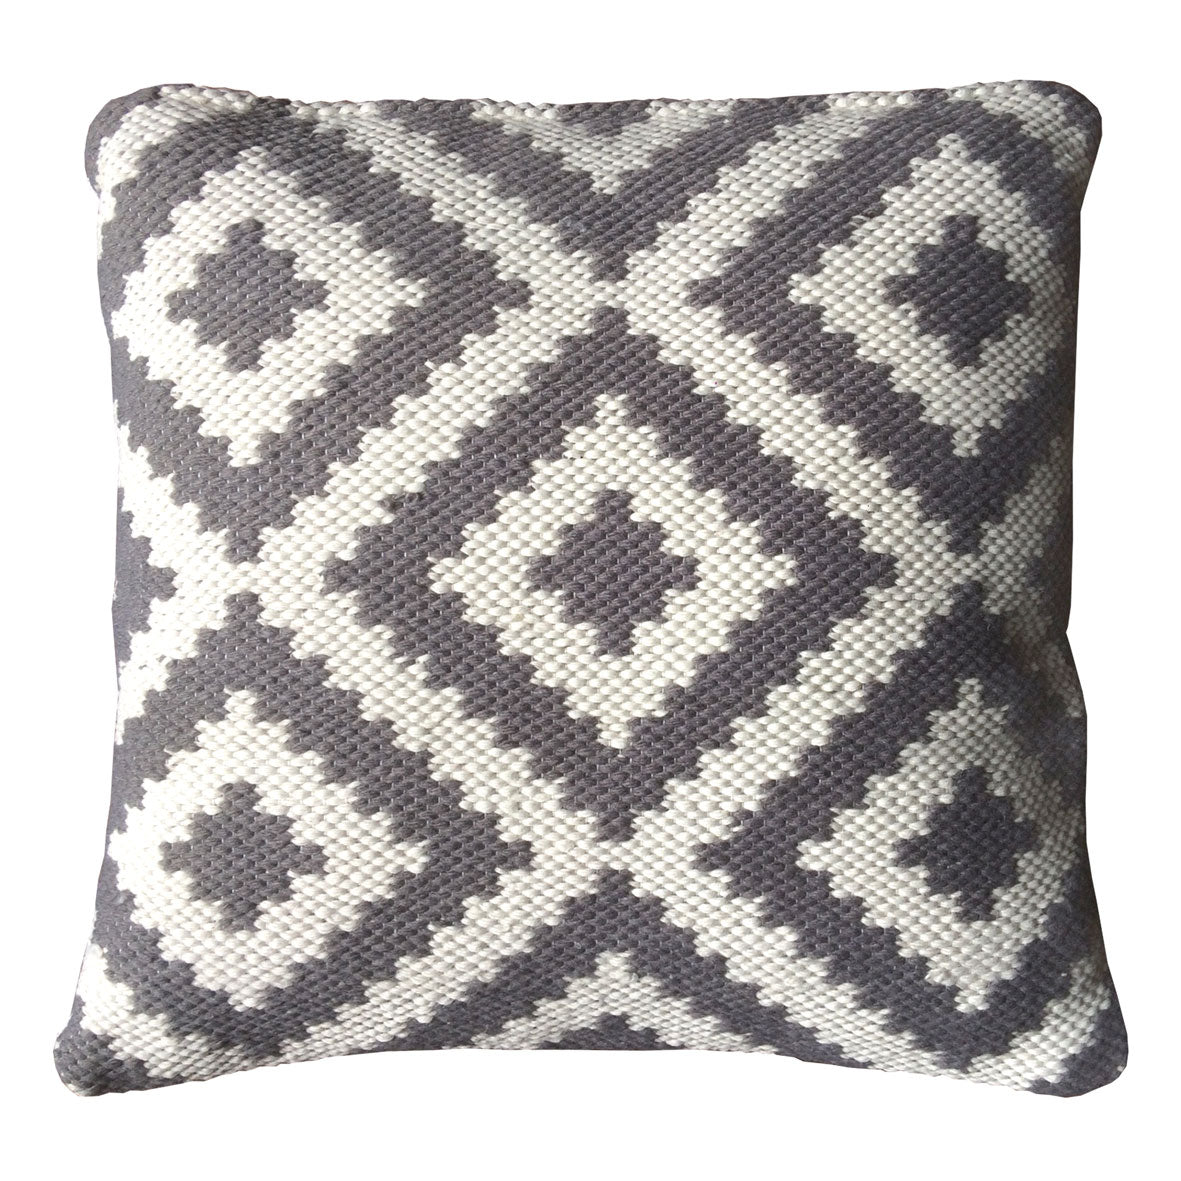 Ava Indoor Outdoor Recycled PET Cushion Cover (Grey/Light Cream)(Cover only)